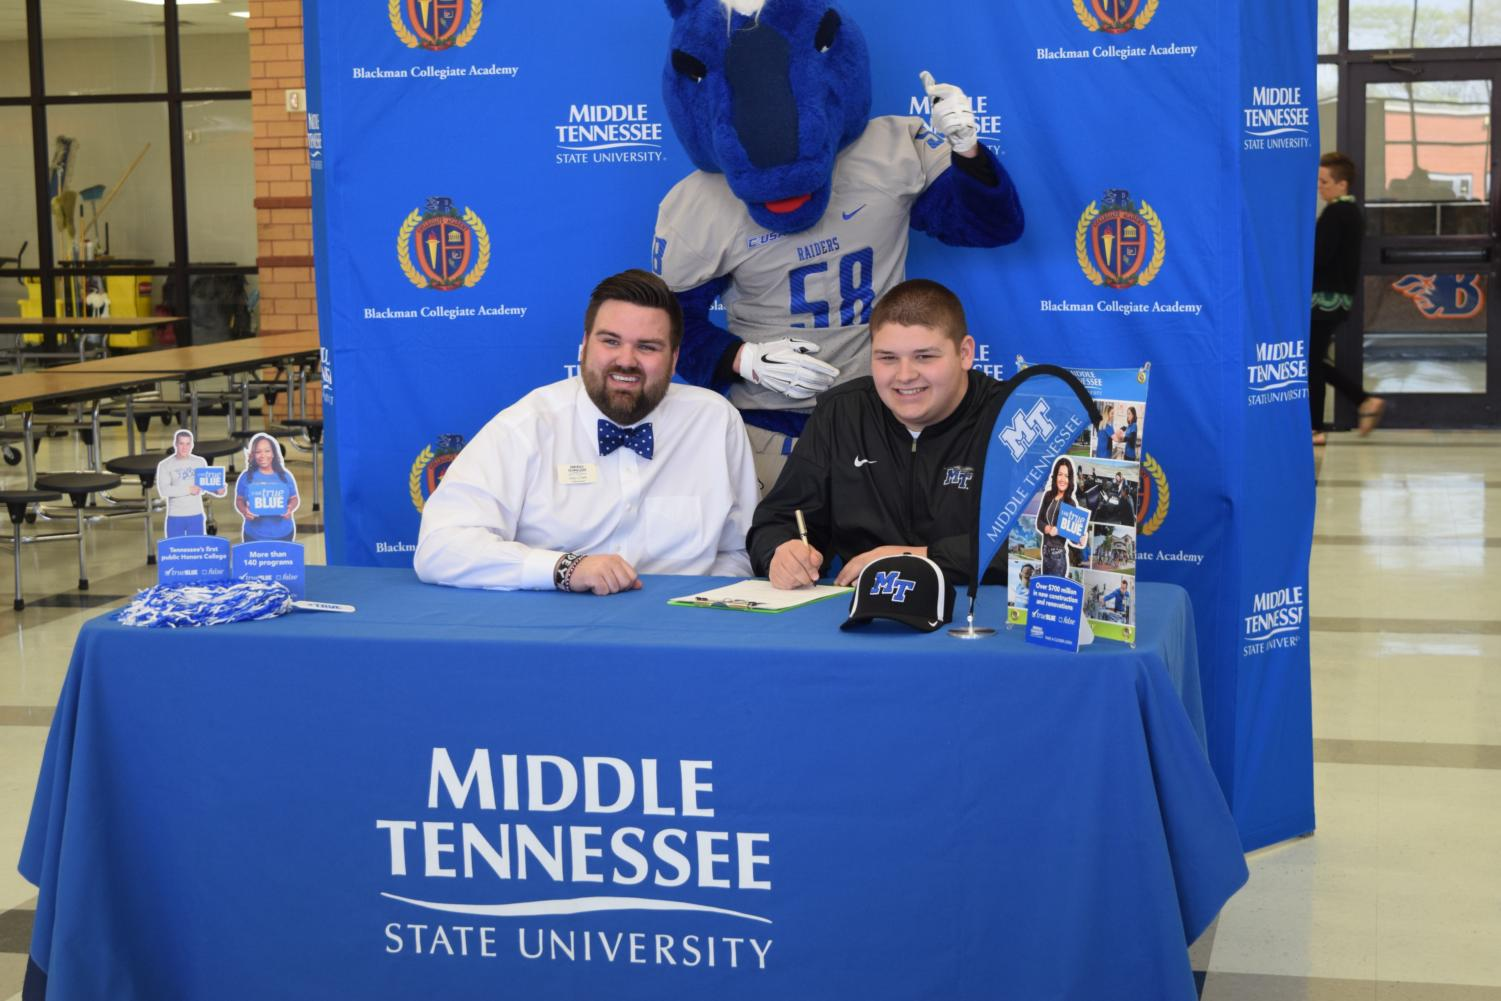 Lance+Pawlowski+will+attend+Middle+Tennessee+State+University+in+the+fall.